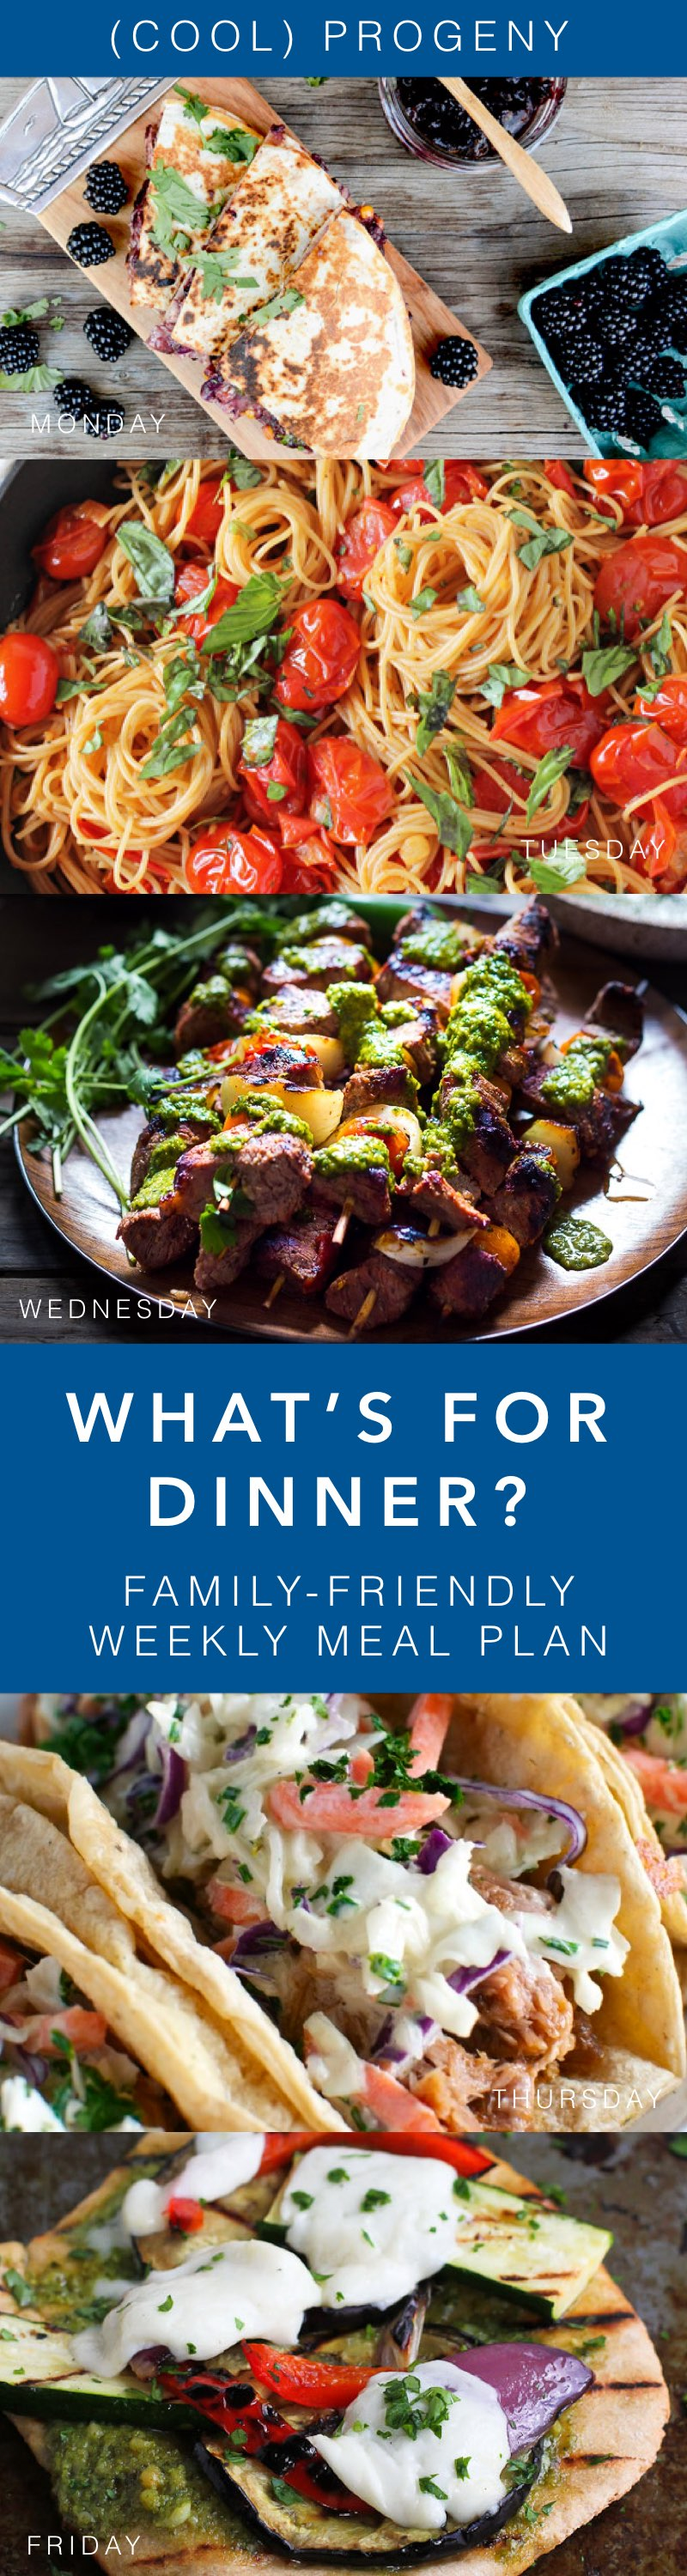 Family-Friendly Meals This Week - (cool) progeny